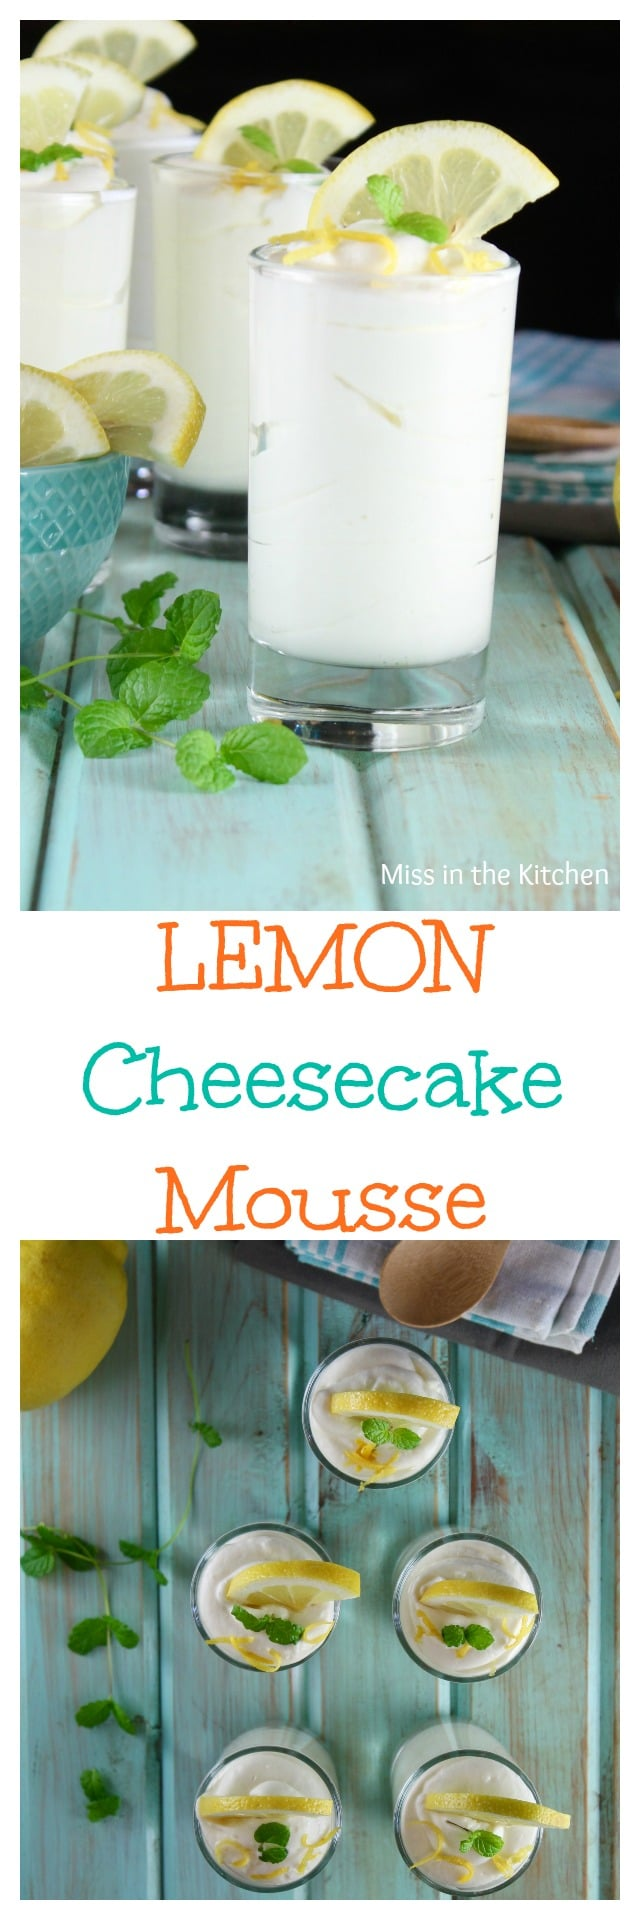 Lemon Cheesecake Mousse Recipe ~ Quick and easy no bake cheesecake dessert recipe found at MissintheKitchen.com